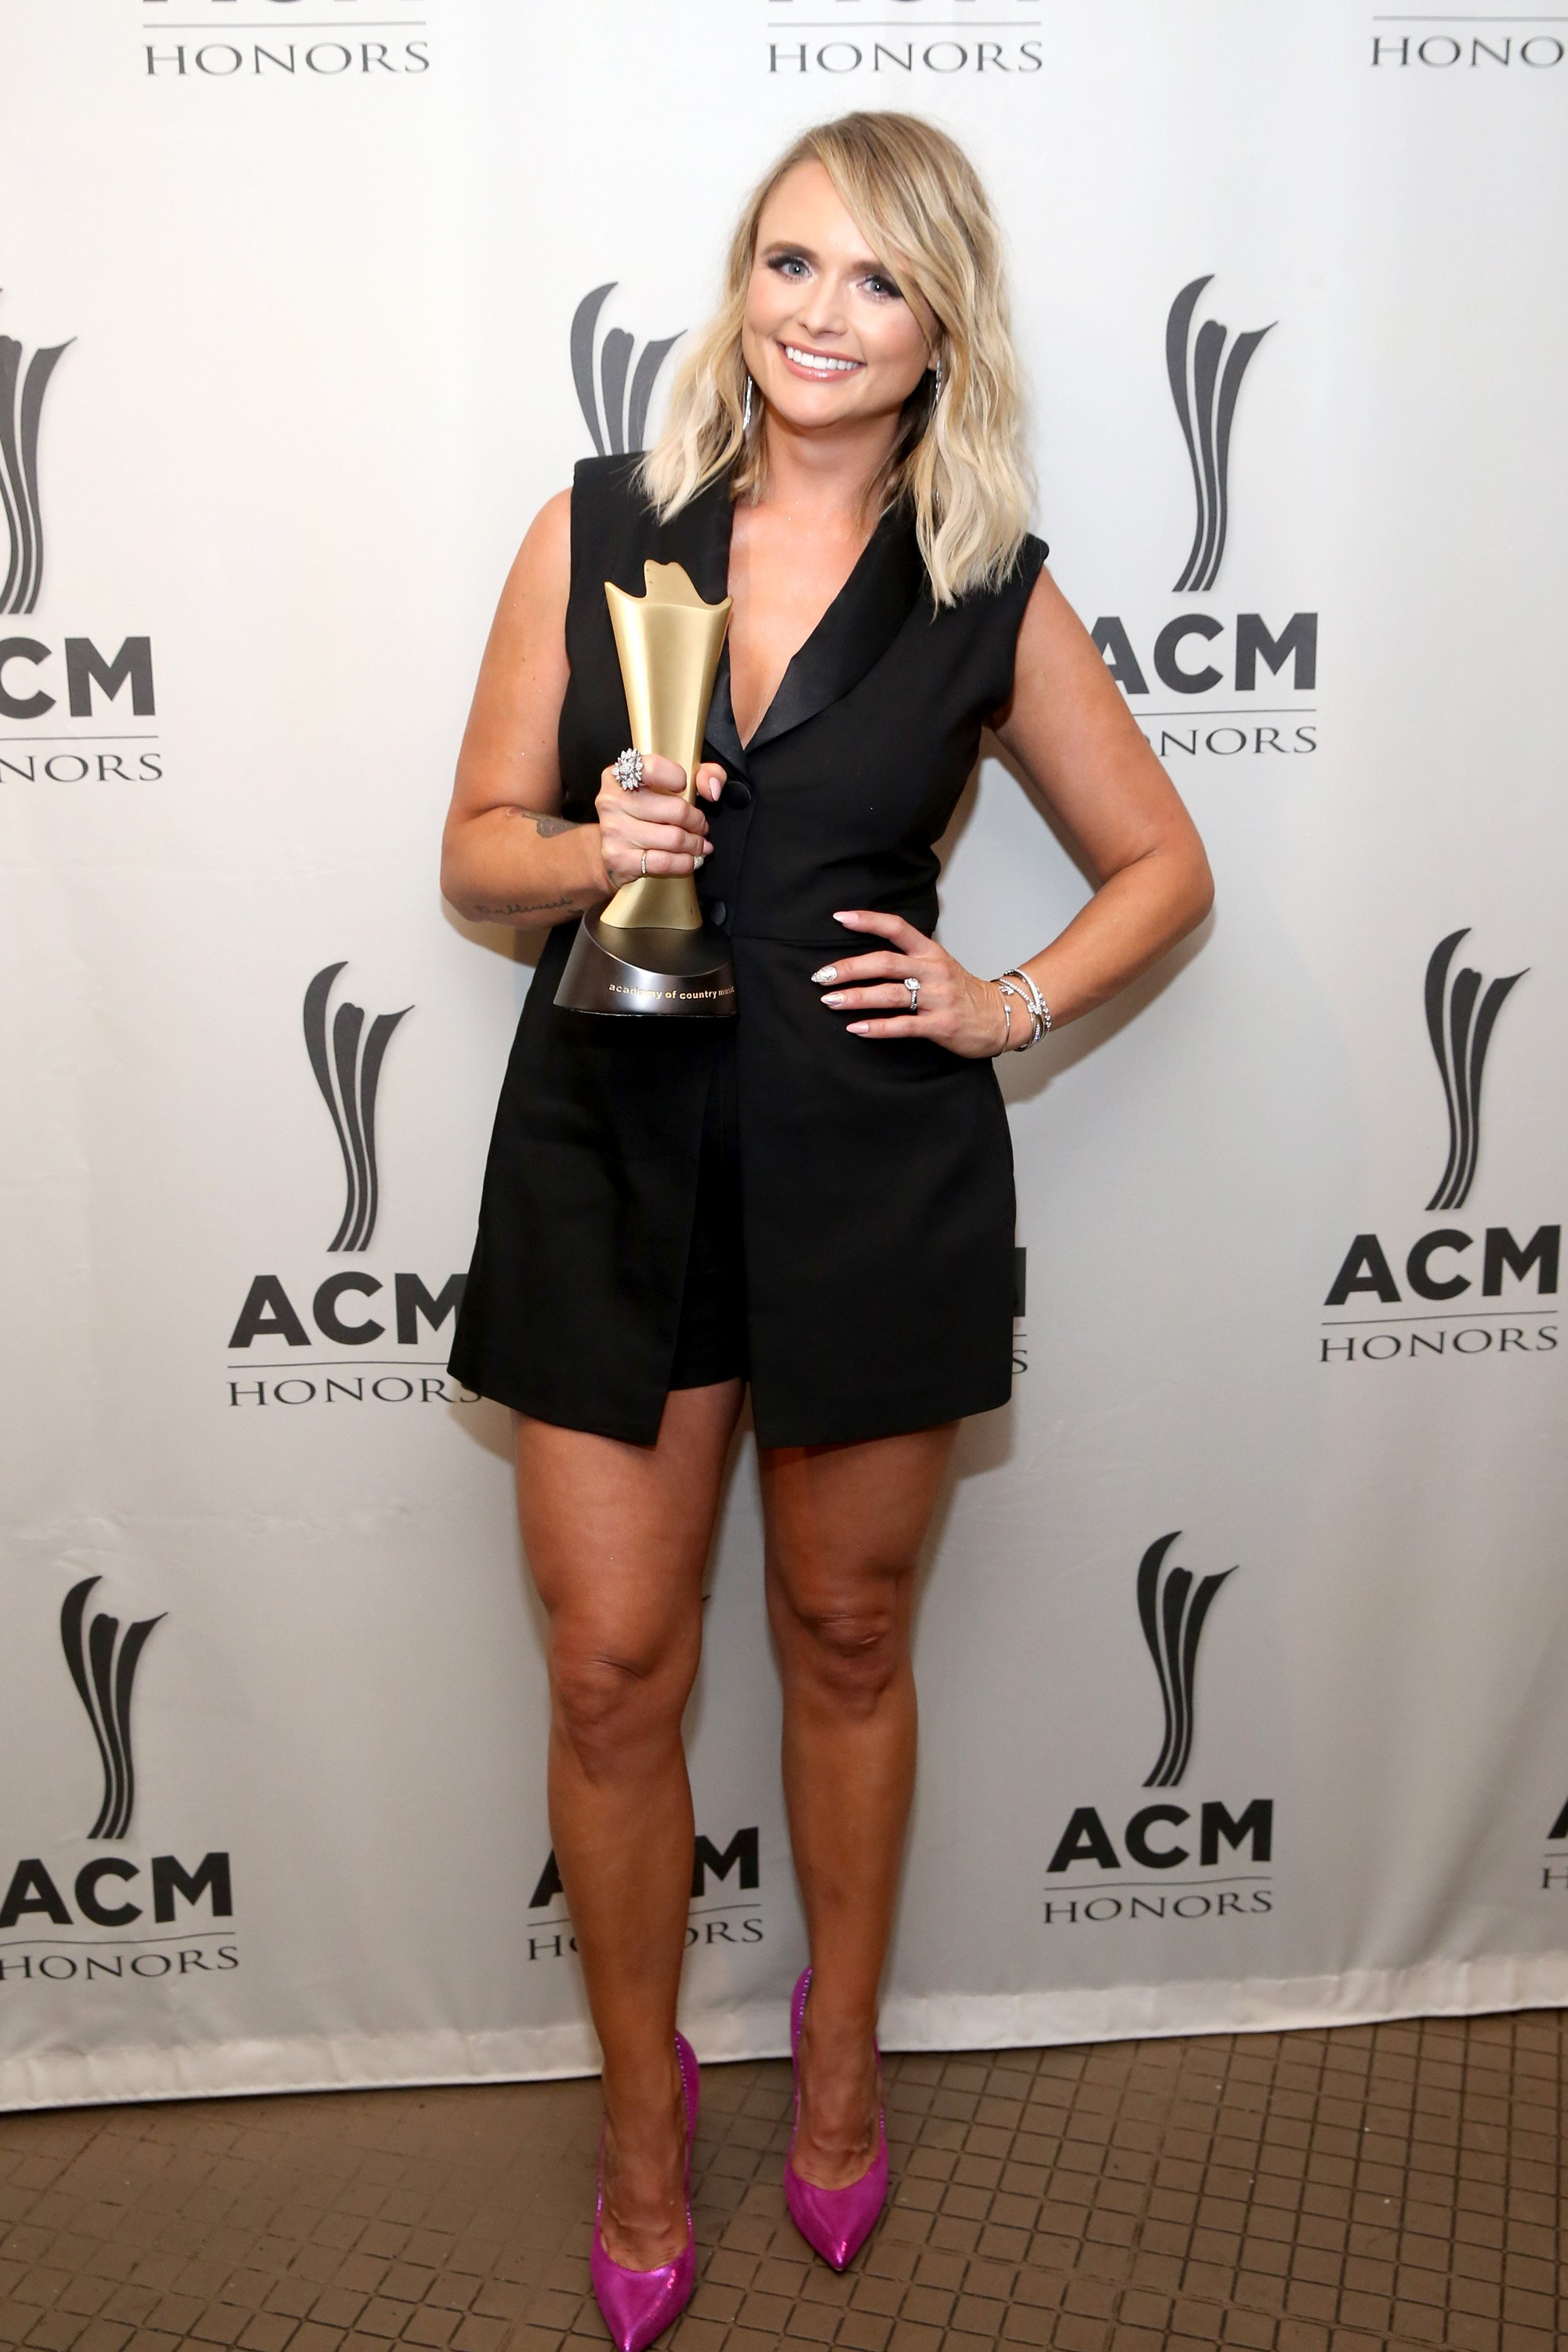 Miranda Lambert appears backage at the ACM Honors in Nashville, Tennesee on August 21, 2019 | Photo: Getty Images